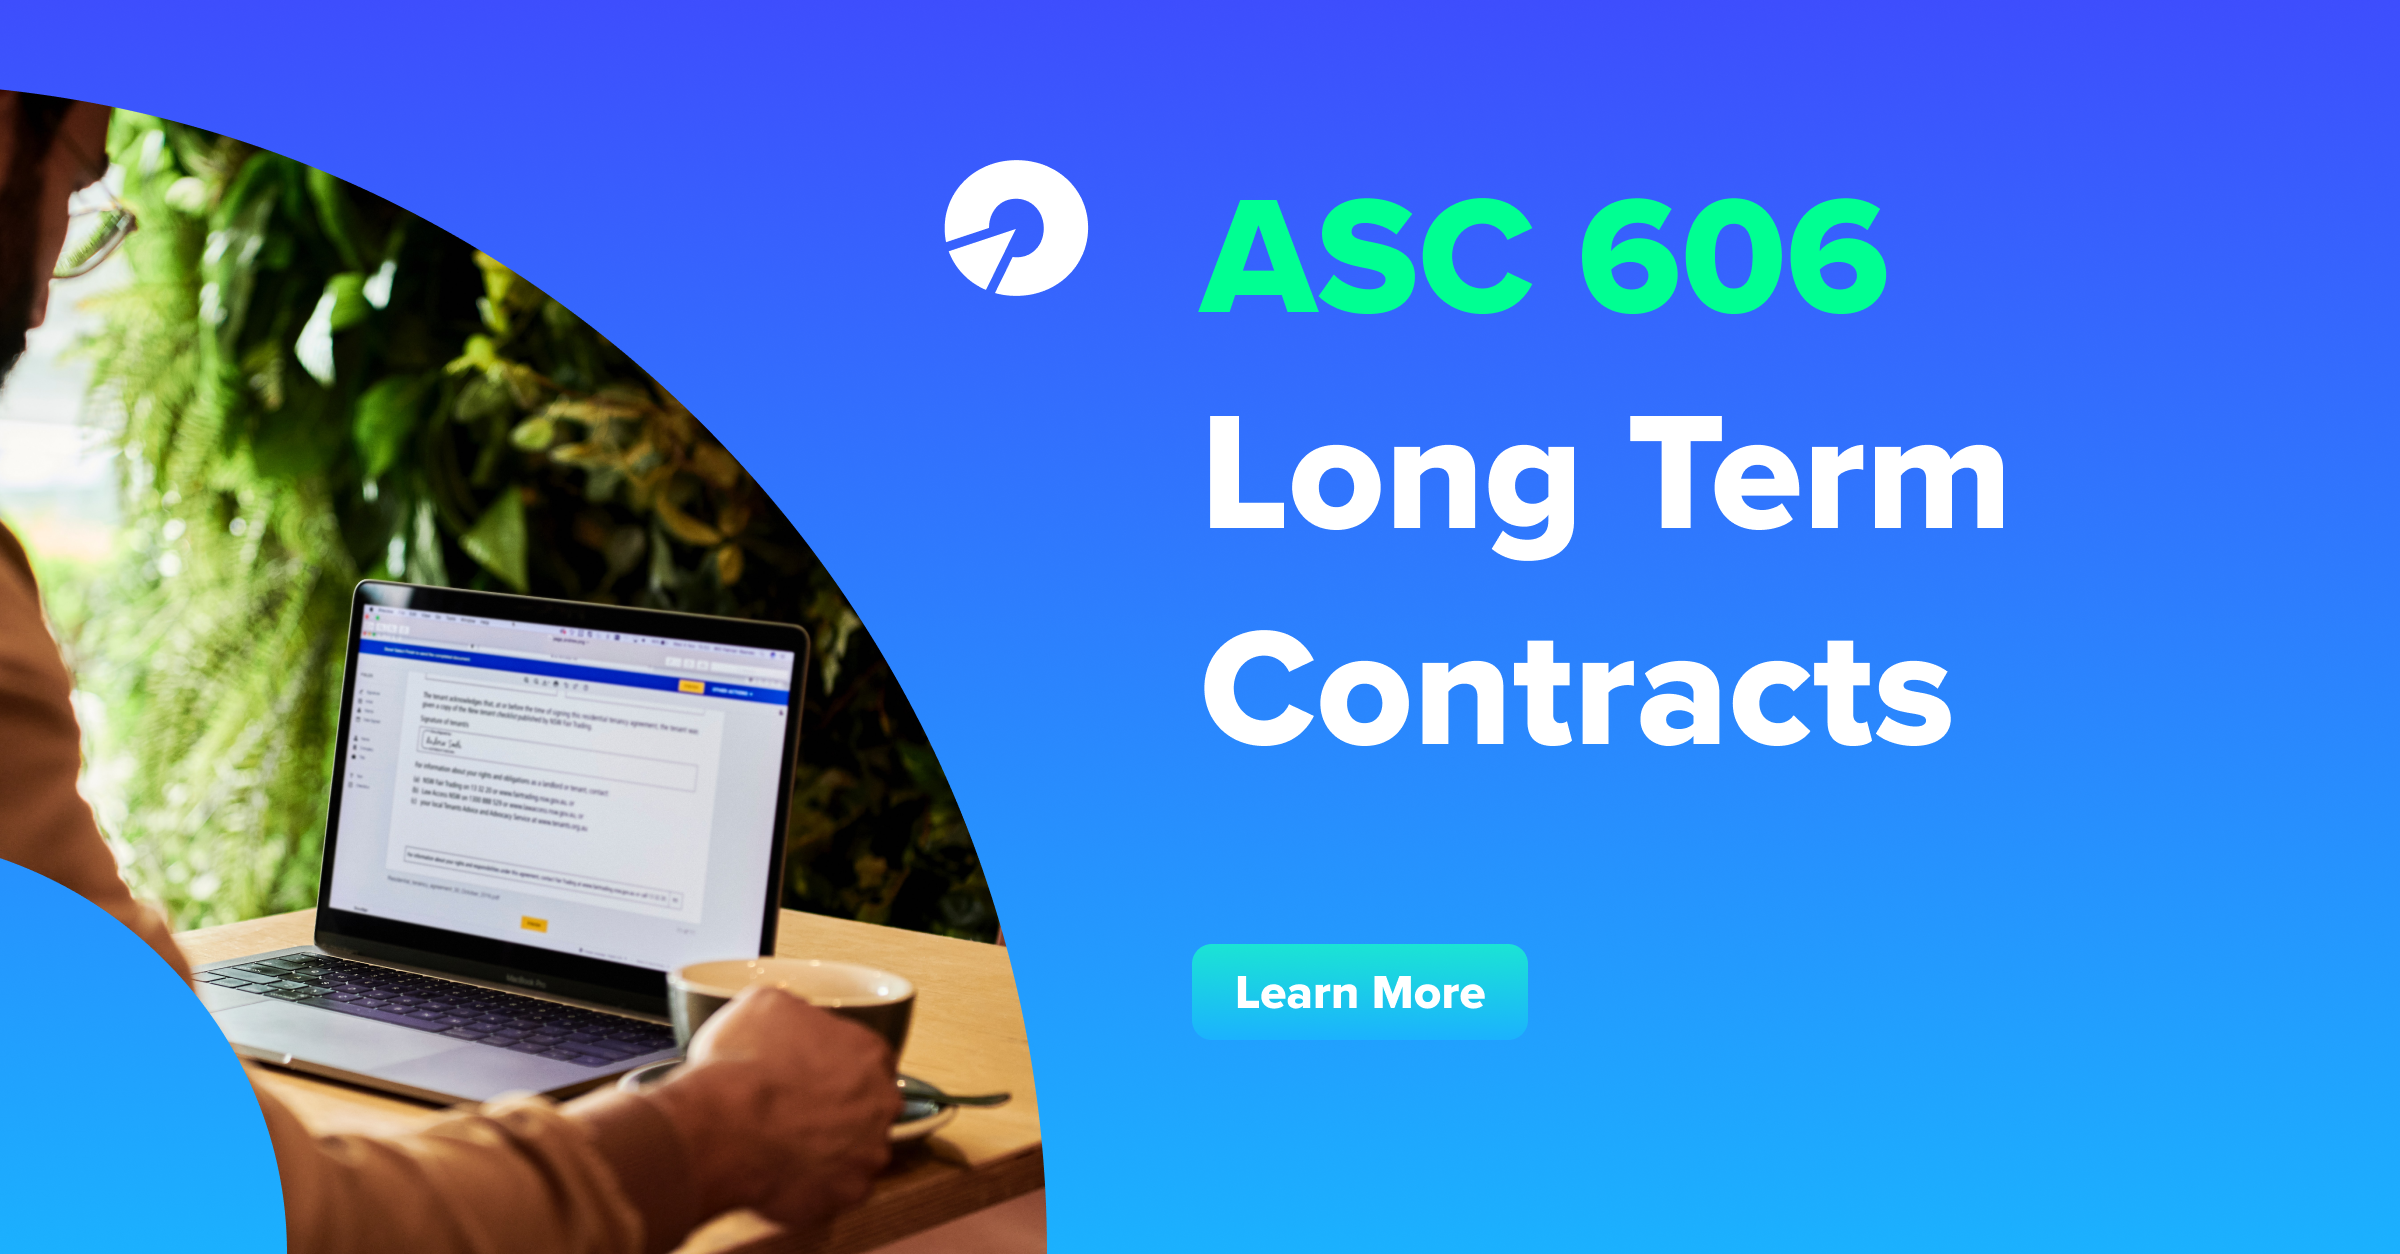 ASC 606 Long Term Contracts